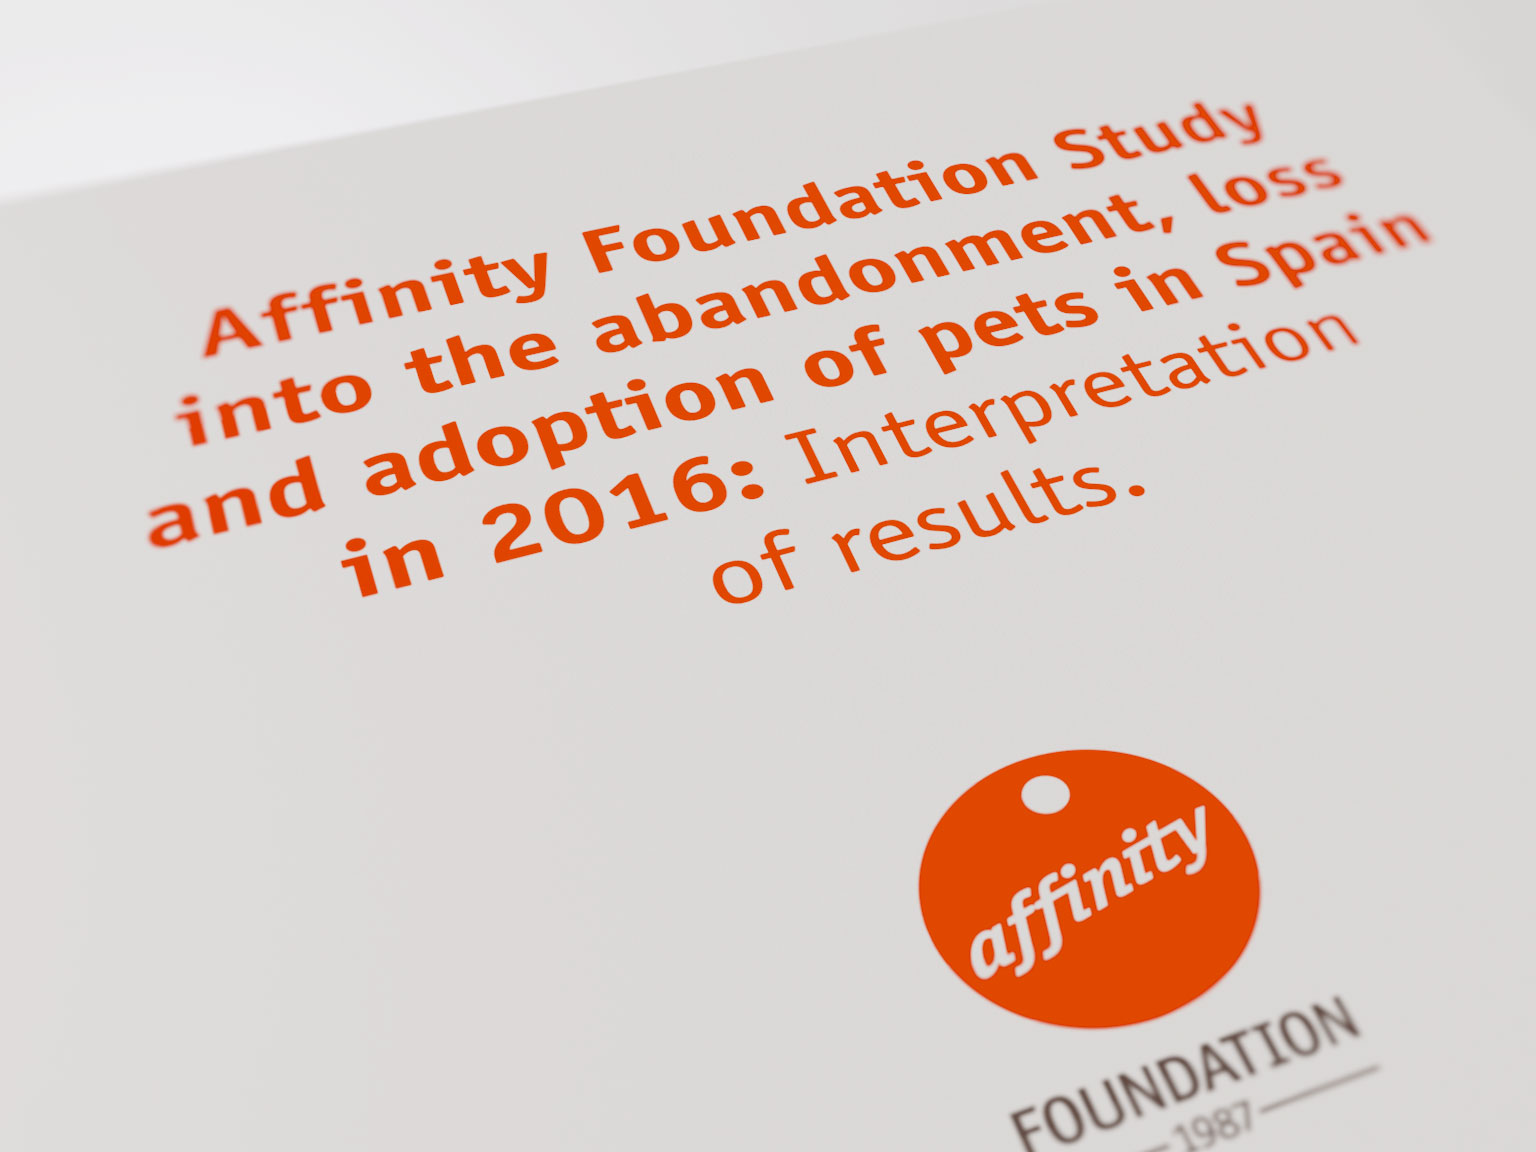 Affinity Foundation Study into the abandonment, loss and adoption of pets in Spain in 2016: Interpretation of results.